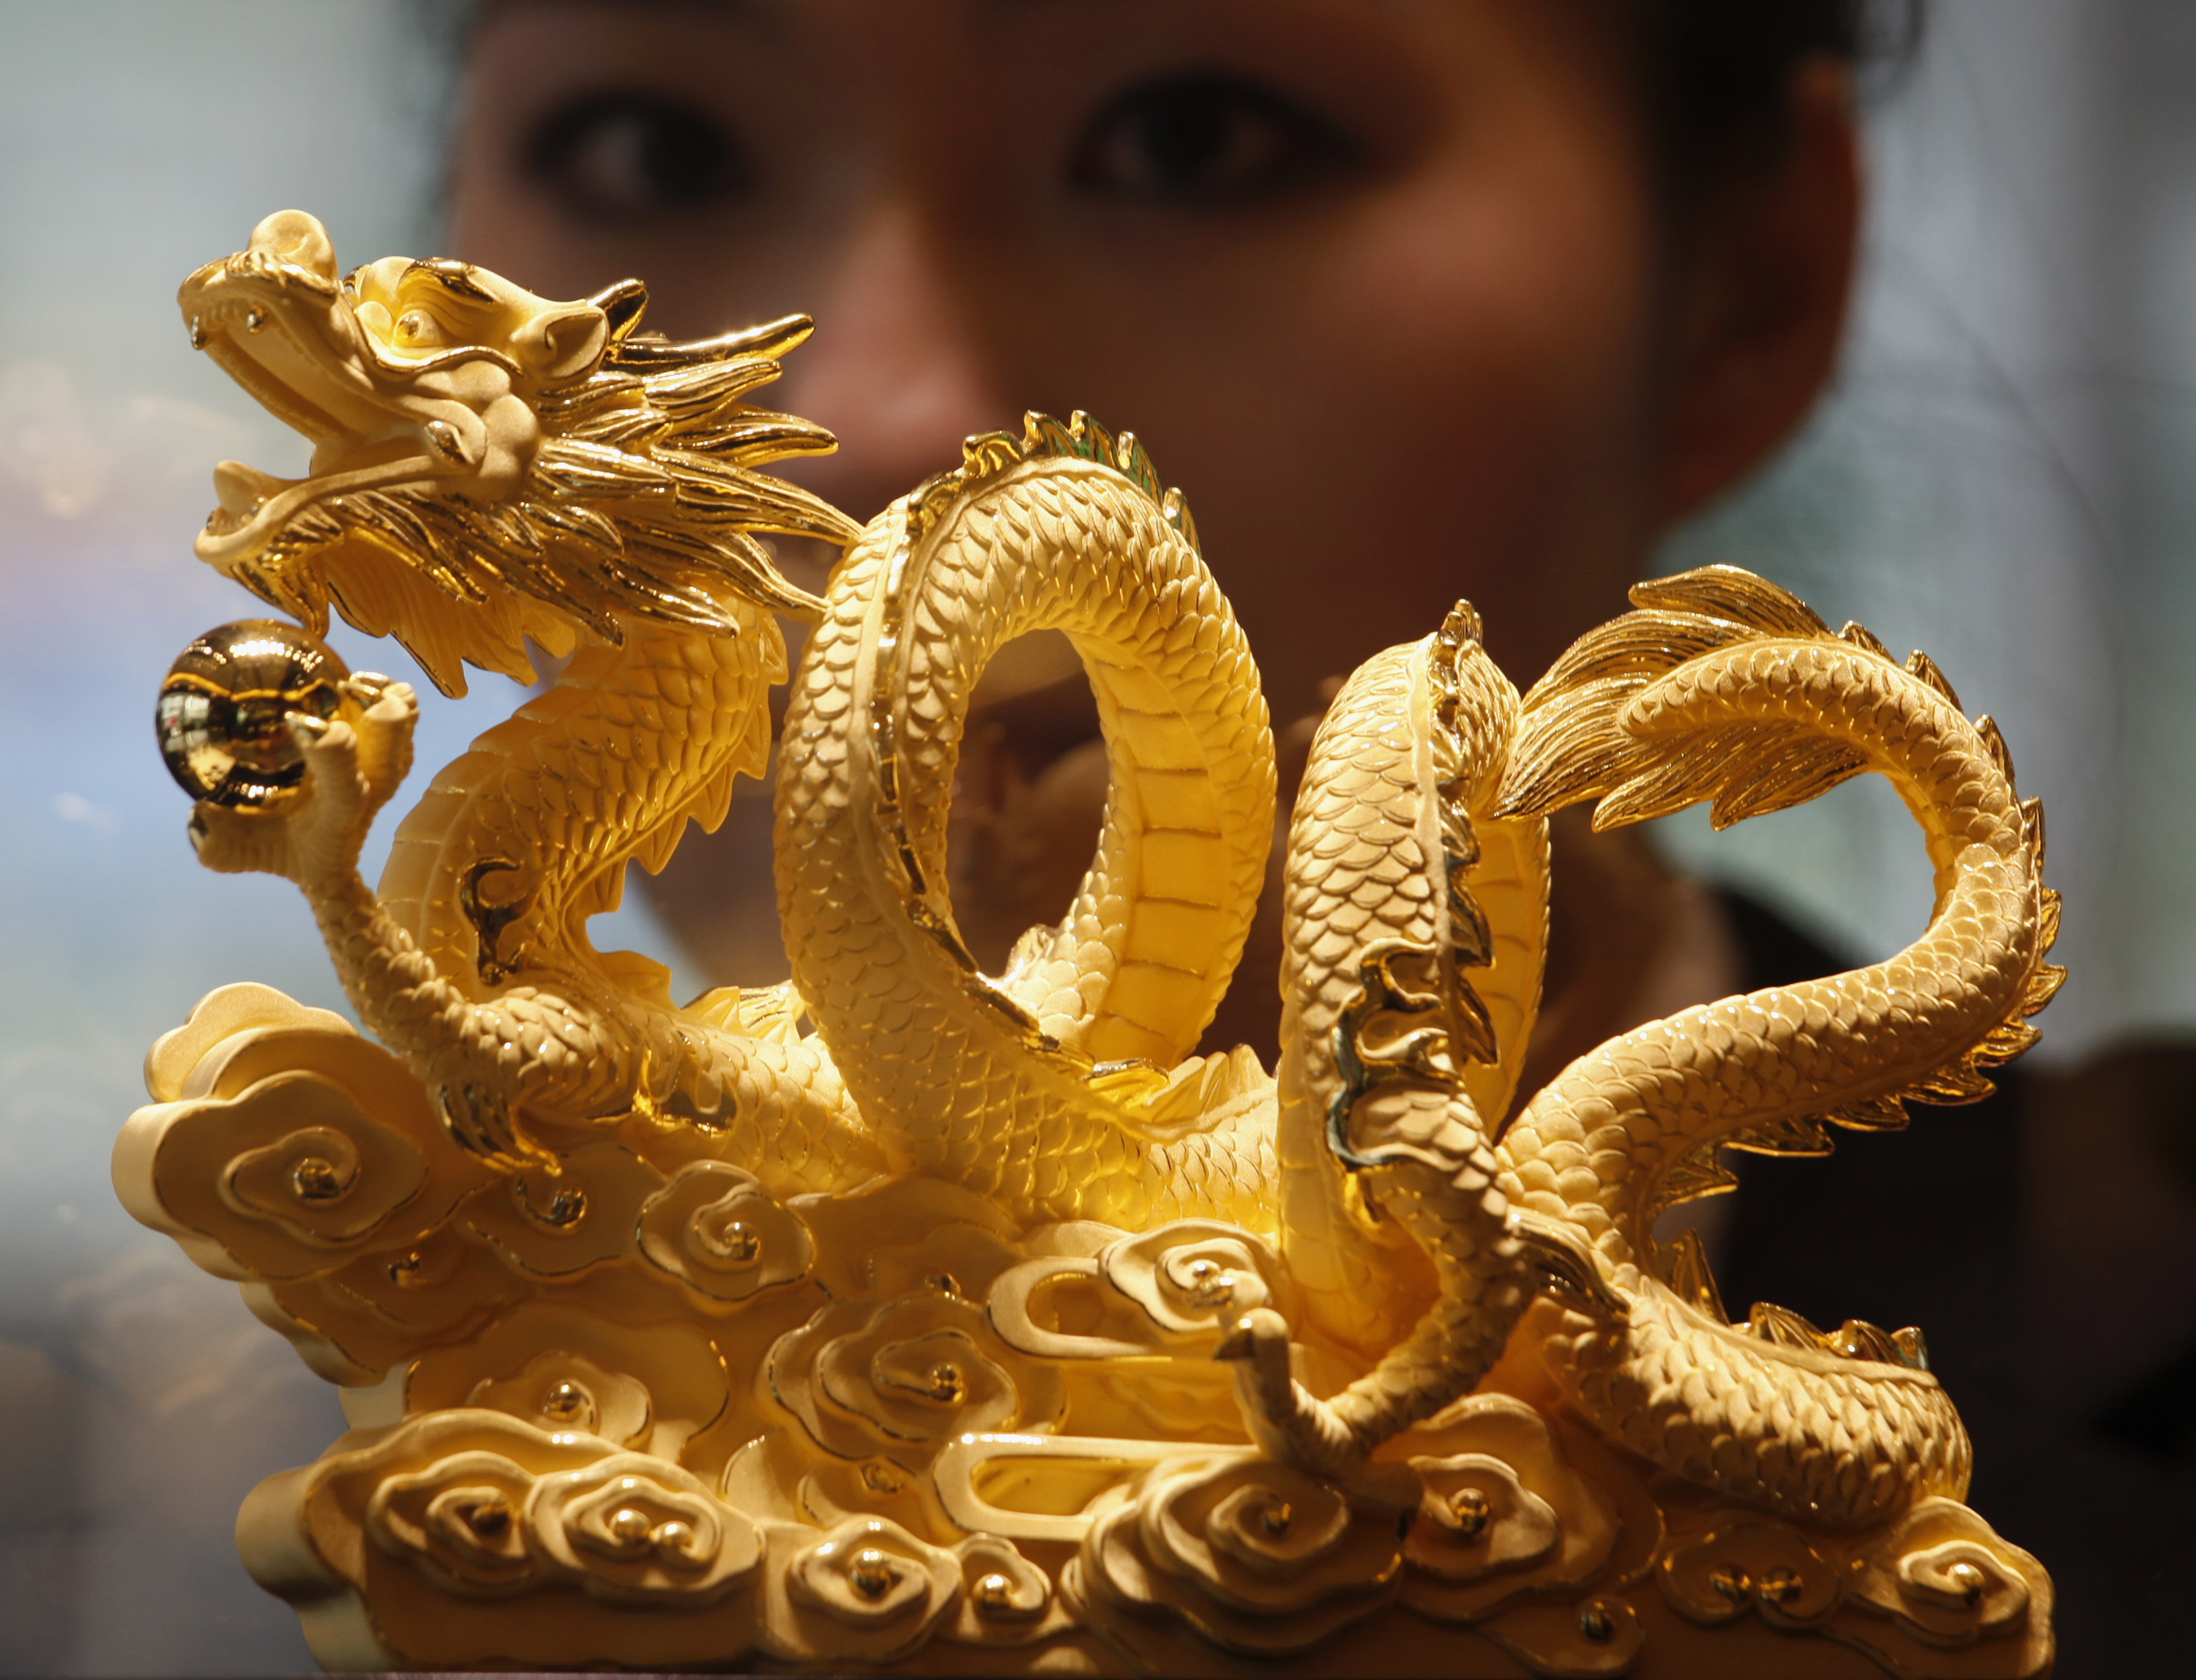 "A sales representative poses behind a nine-tael 24K gold in the shape of a dragon forming the numerals ""2012"", symbolizing the upcoming Year of the Dragon, at a Chow Tai Fook Jewellery store in Hong Kong December 6, 2011. Chow Tai Fook Jewellery, braving volatile markets with a listing in which it hopes to raise up to HK$22 billion ($2.8 billion), expects strong consumer demand in China, Hong Kong and Macau to drive sales over the next 10 years, its chairman said. REUTERS/Bobby Yip (CHINA - Tags: BUSINESS COMMODITIES SOCIETY WEALTH) - RTR2UWBQ"